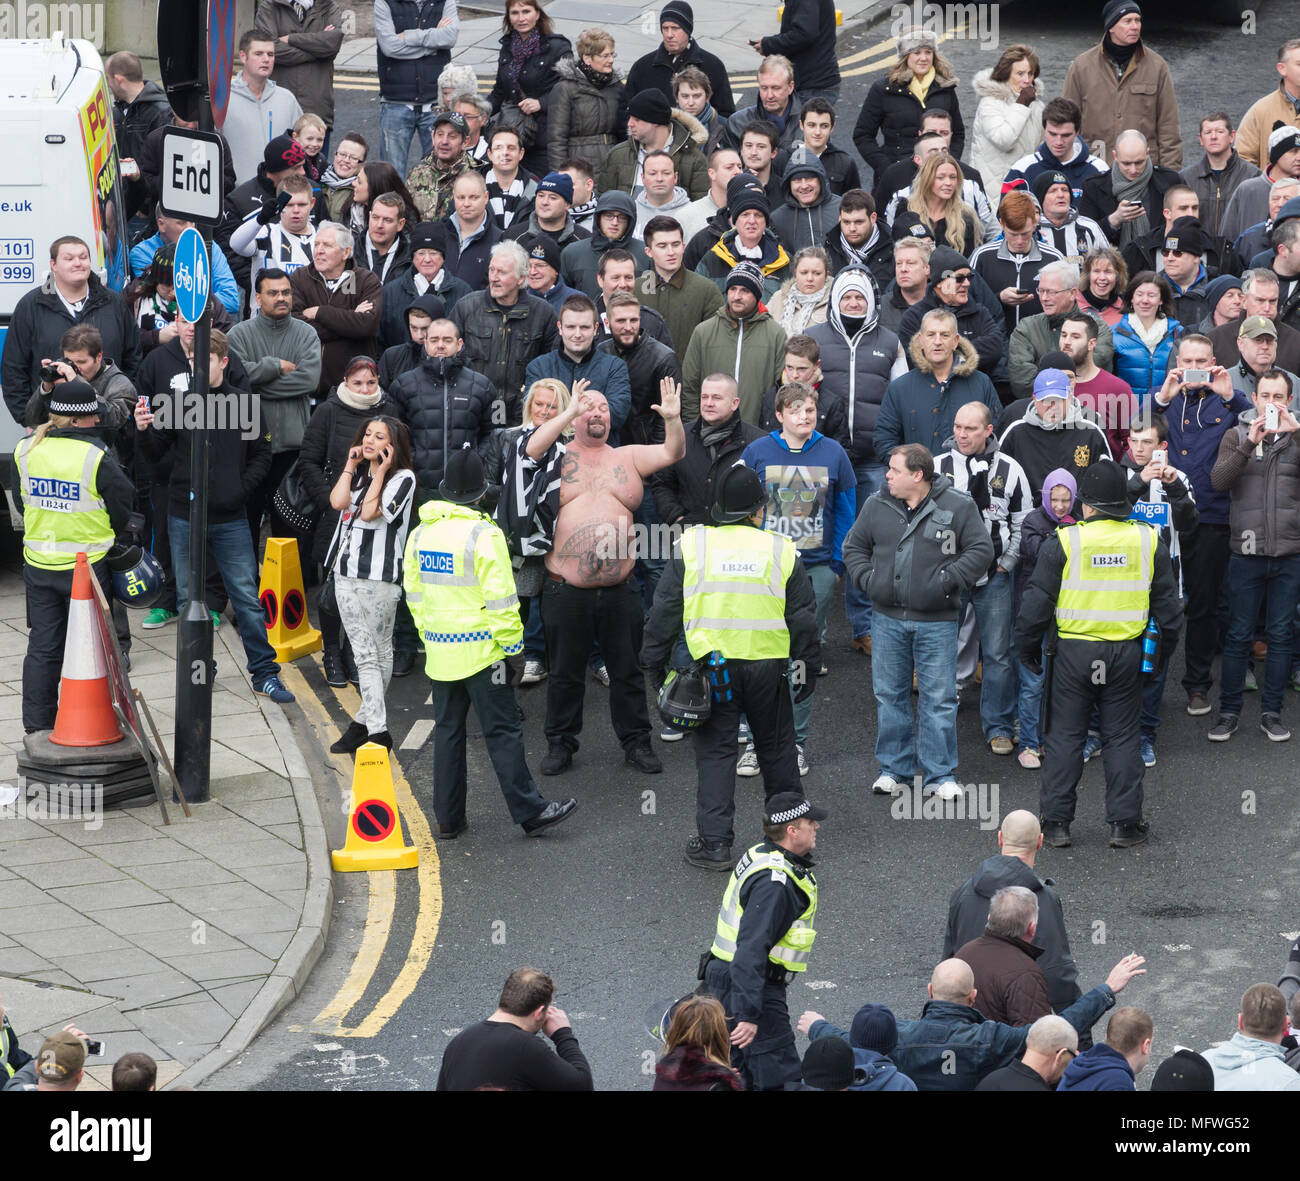 Newcastle United supporters taunting Sunderland supporters who are being escorted to stadium from train station Newcastle v Sunderland match. UK - Stock Image